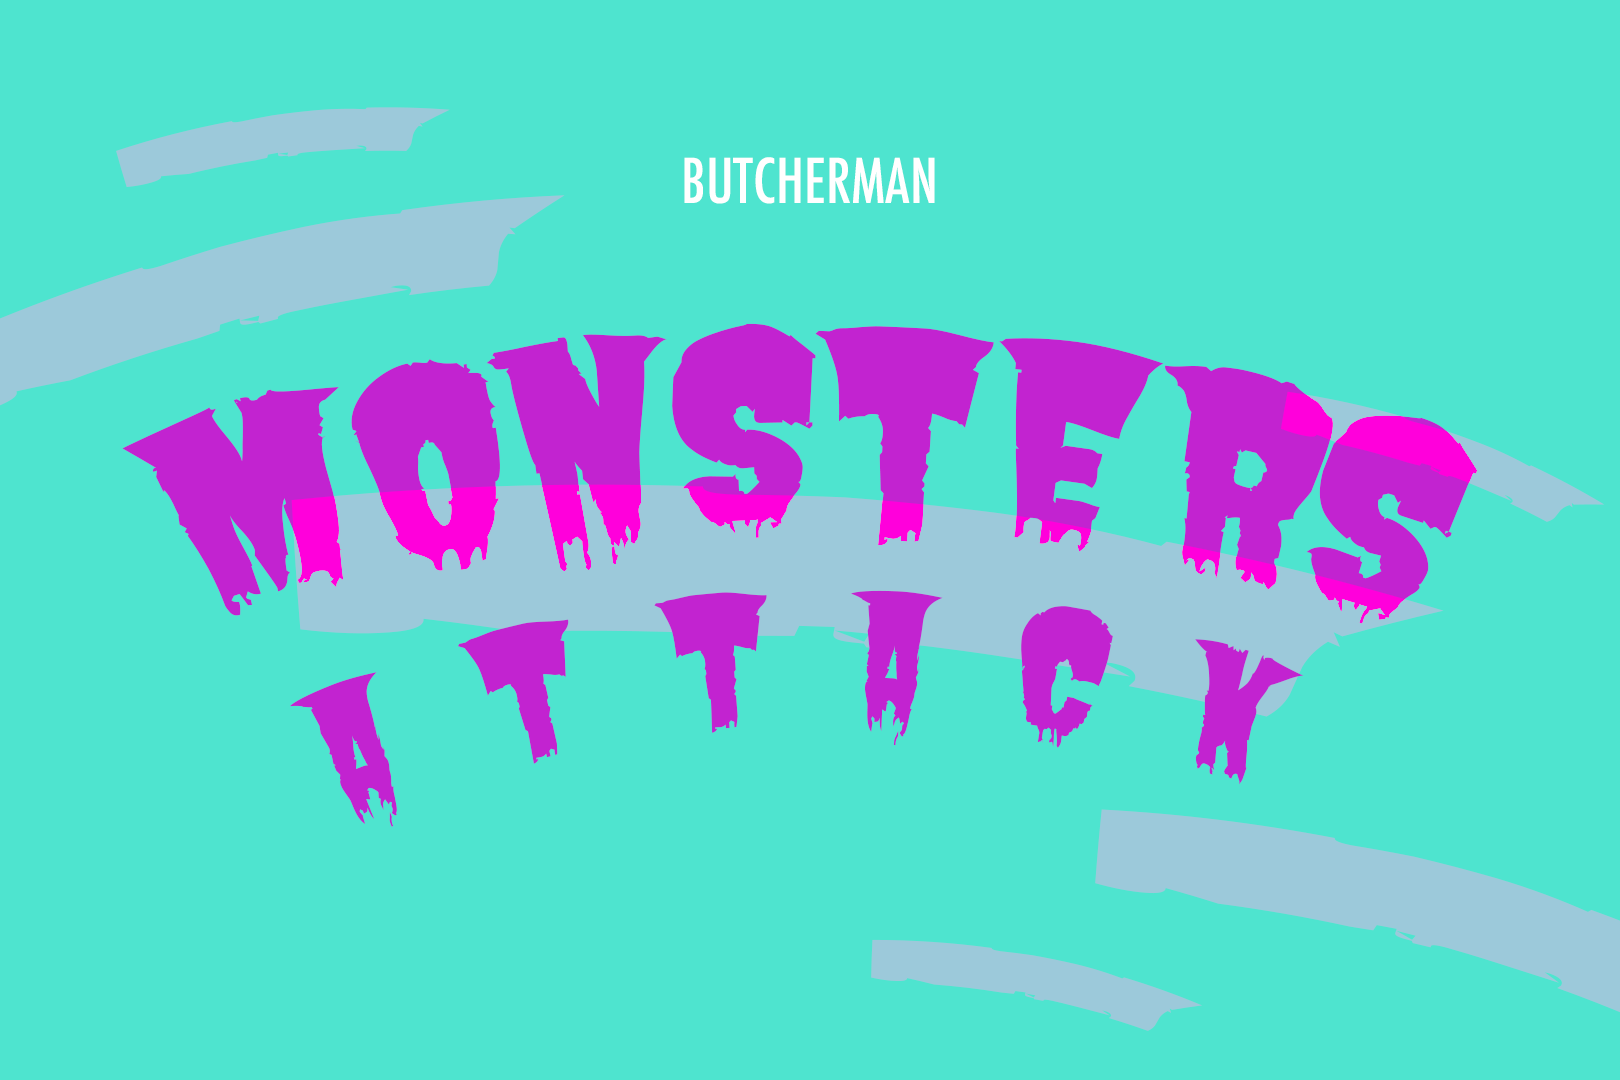 6-migliori-google-font-halloween-gratis-super-colors-butcherman-free-fonts-halloween